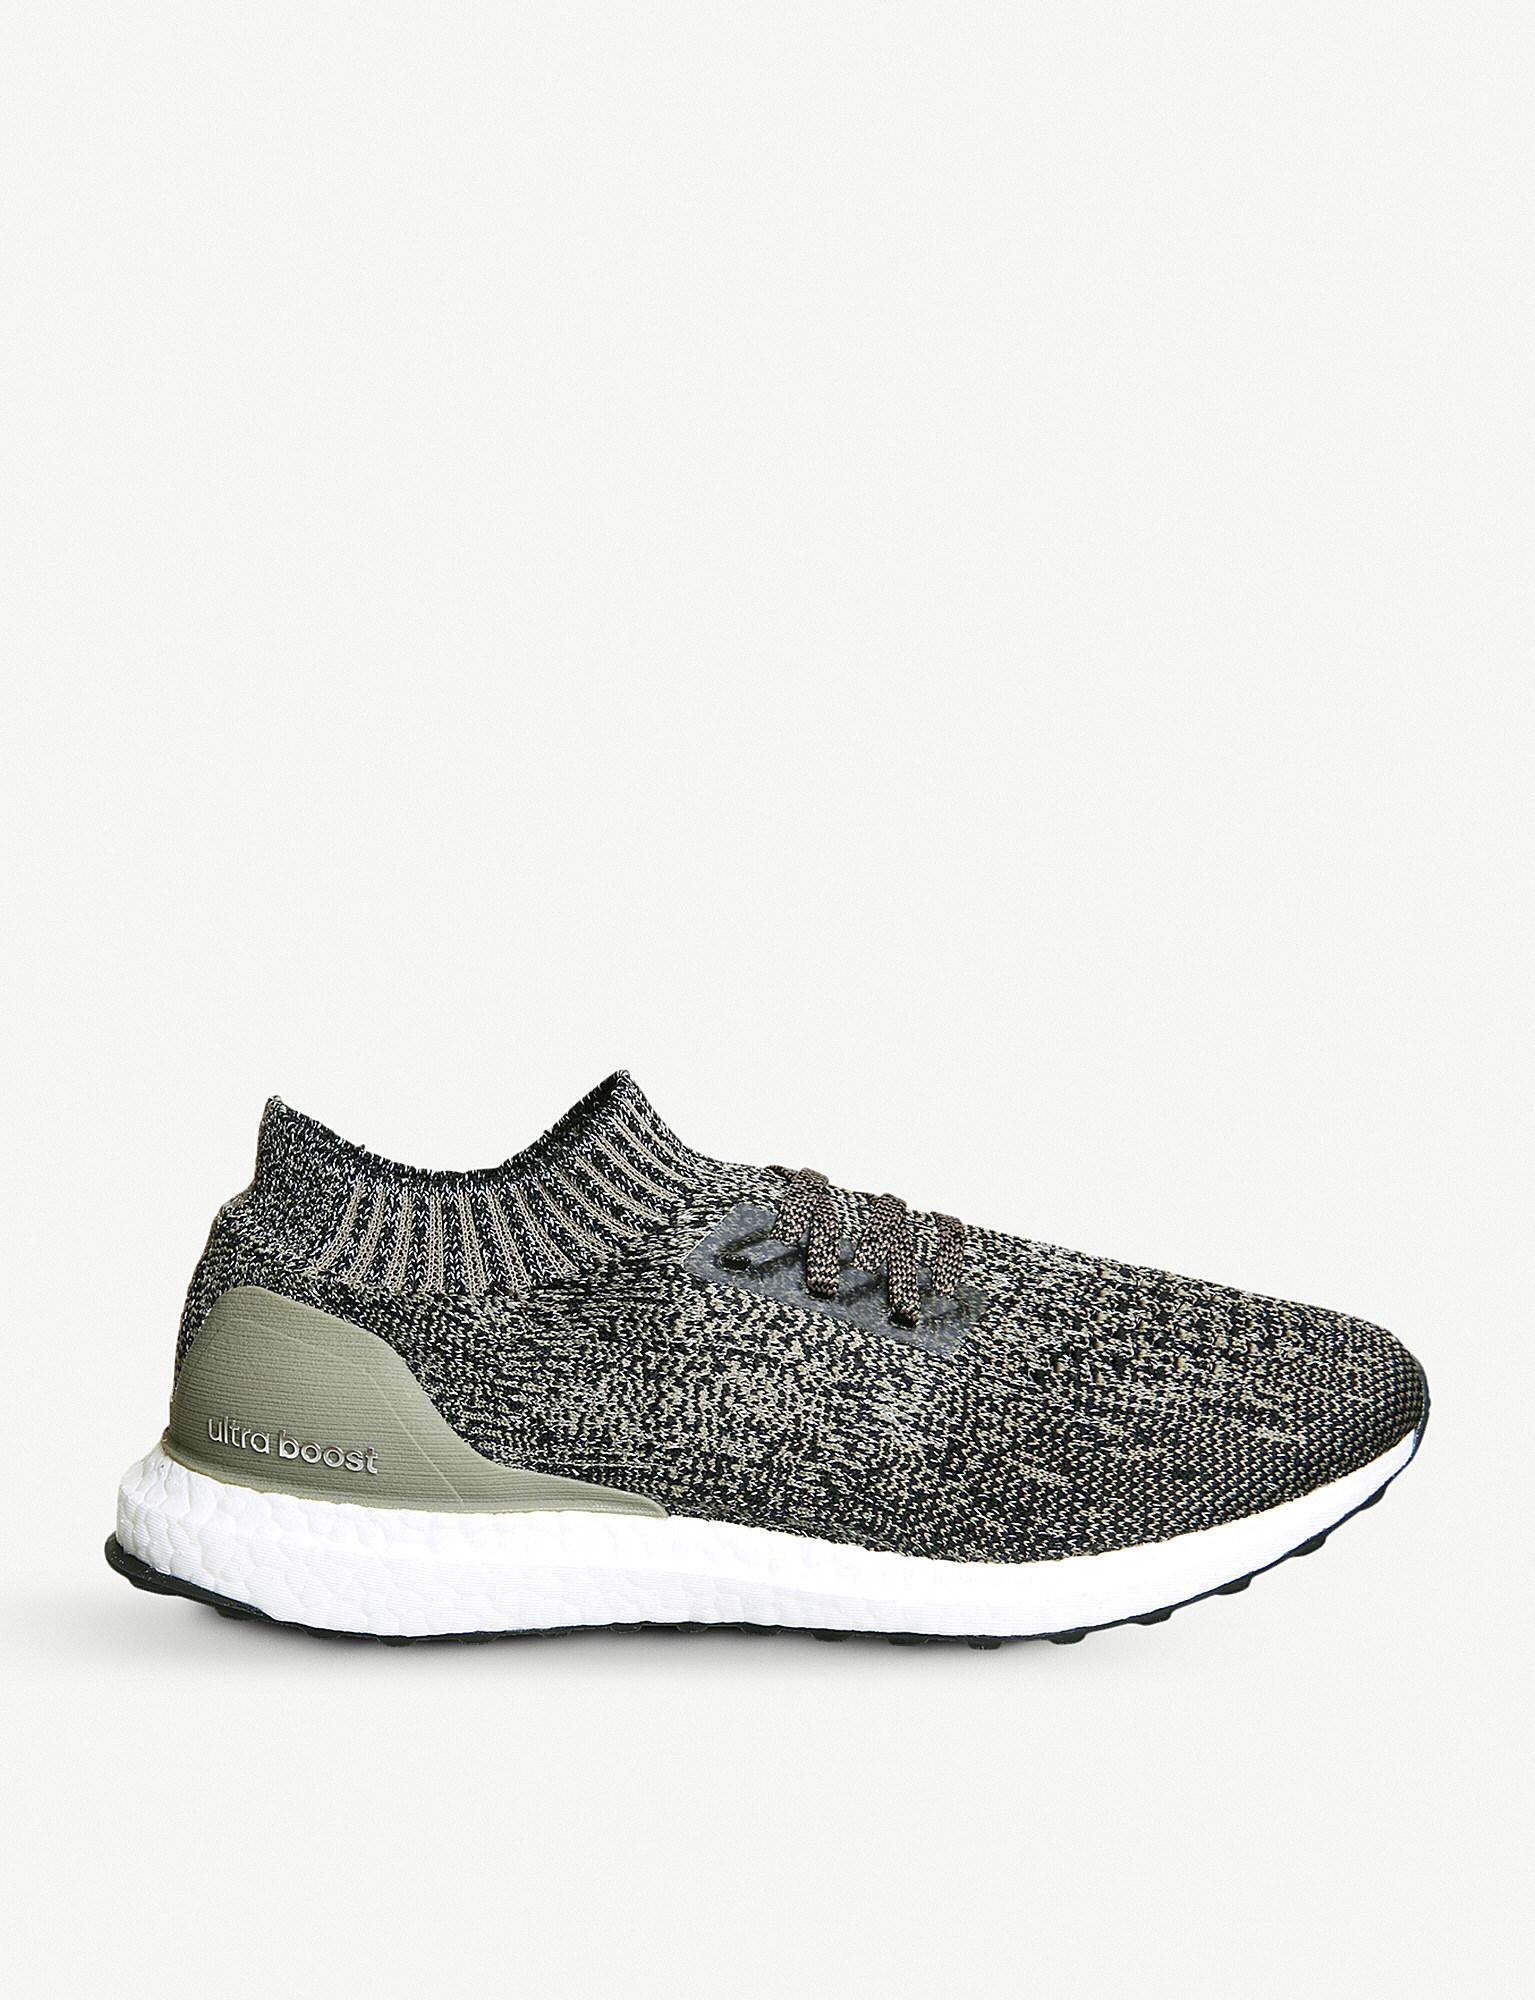 best service 93beb e788e adidas. Mens Ultra Boost Uncaged Primeknit Trainers